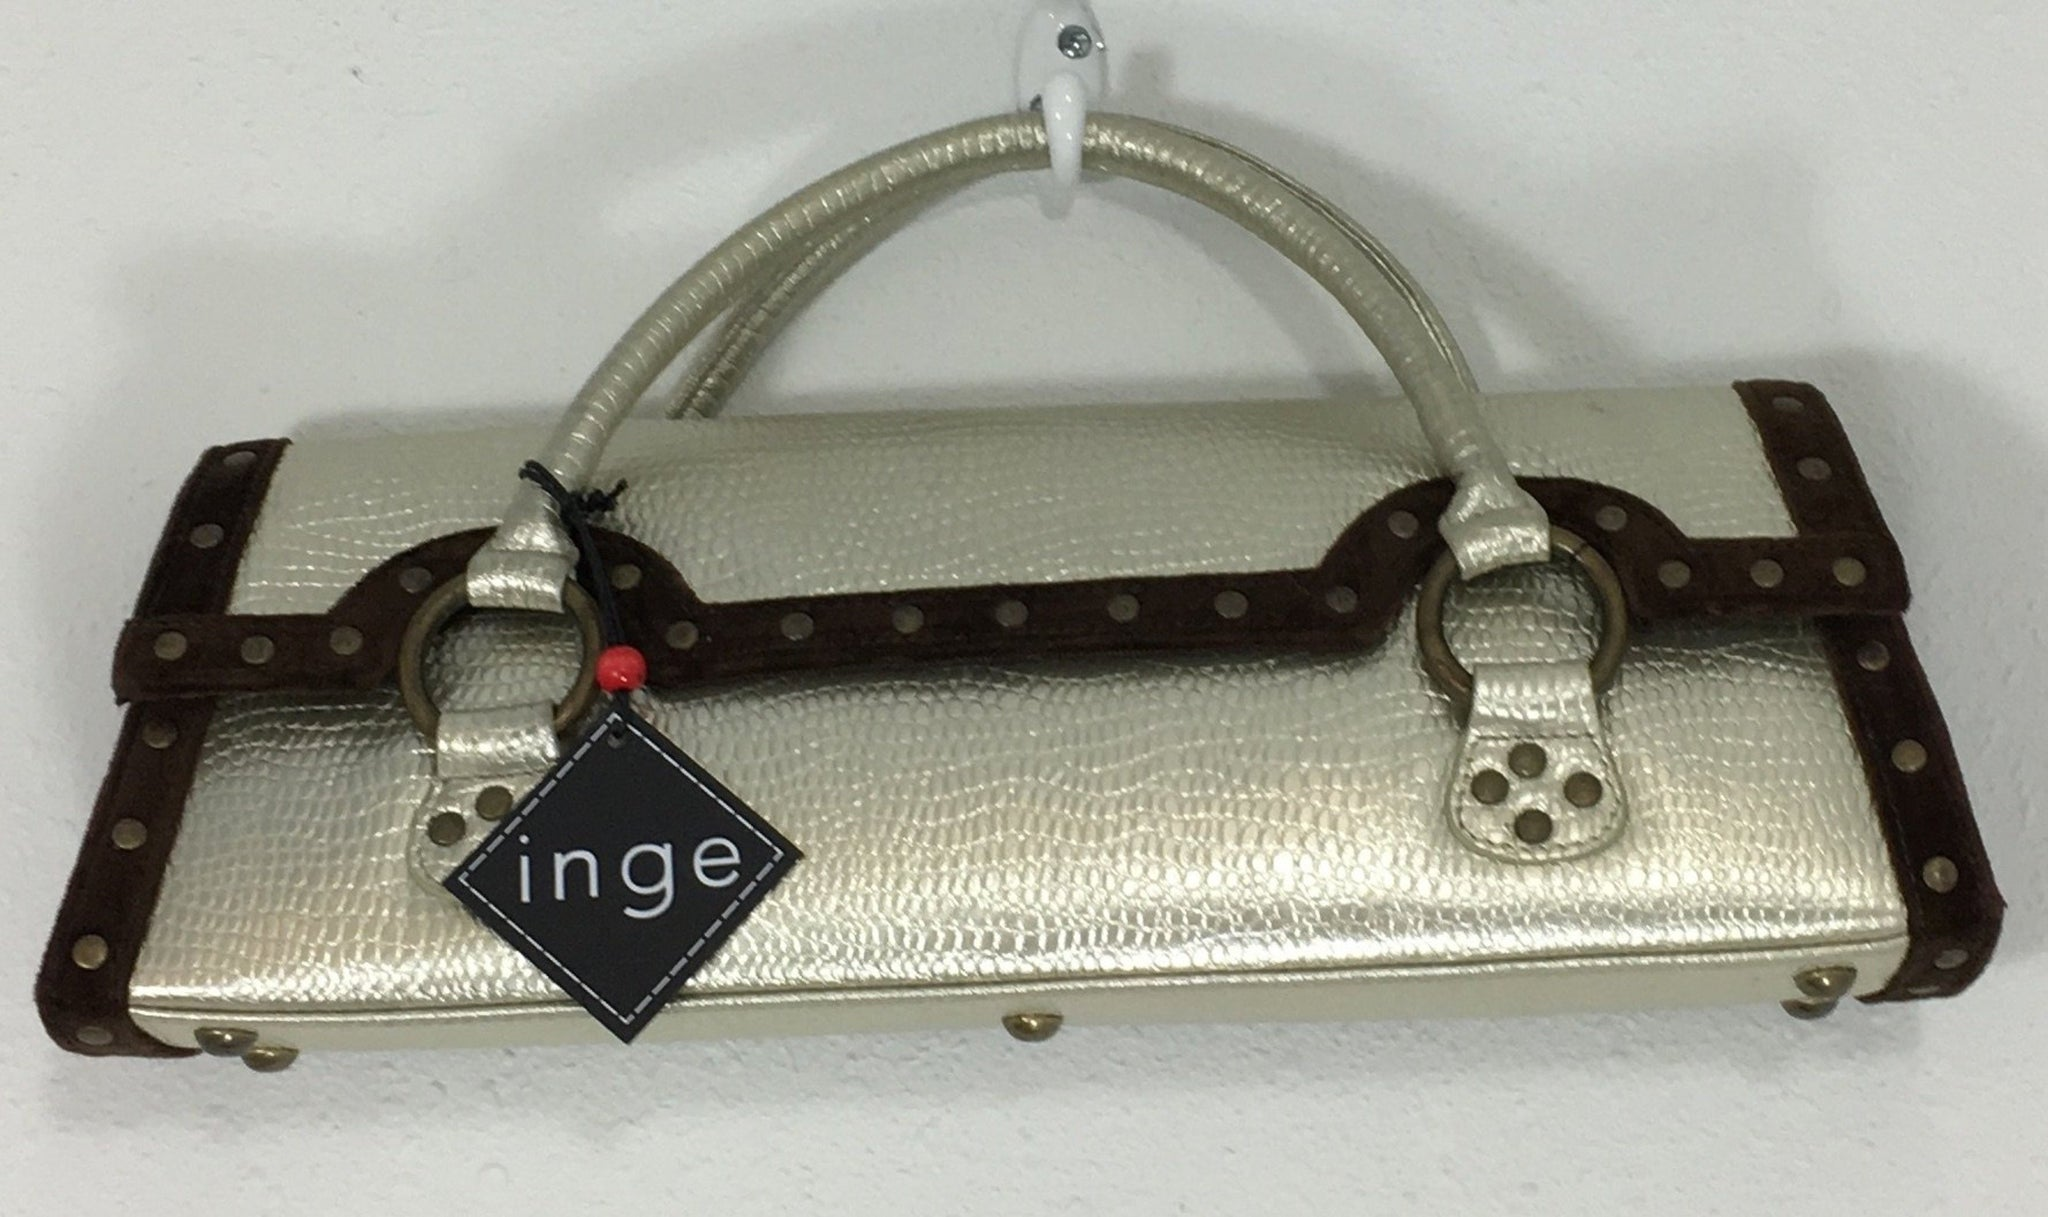 New Vintage Inge Handbag, SUPER SALE